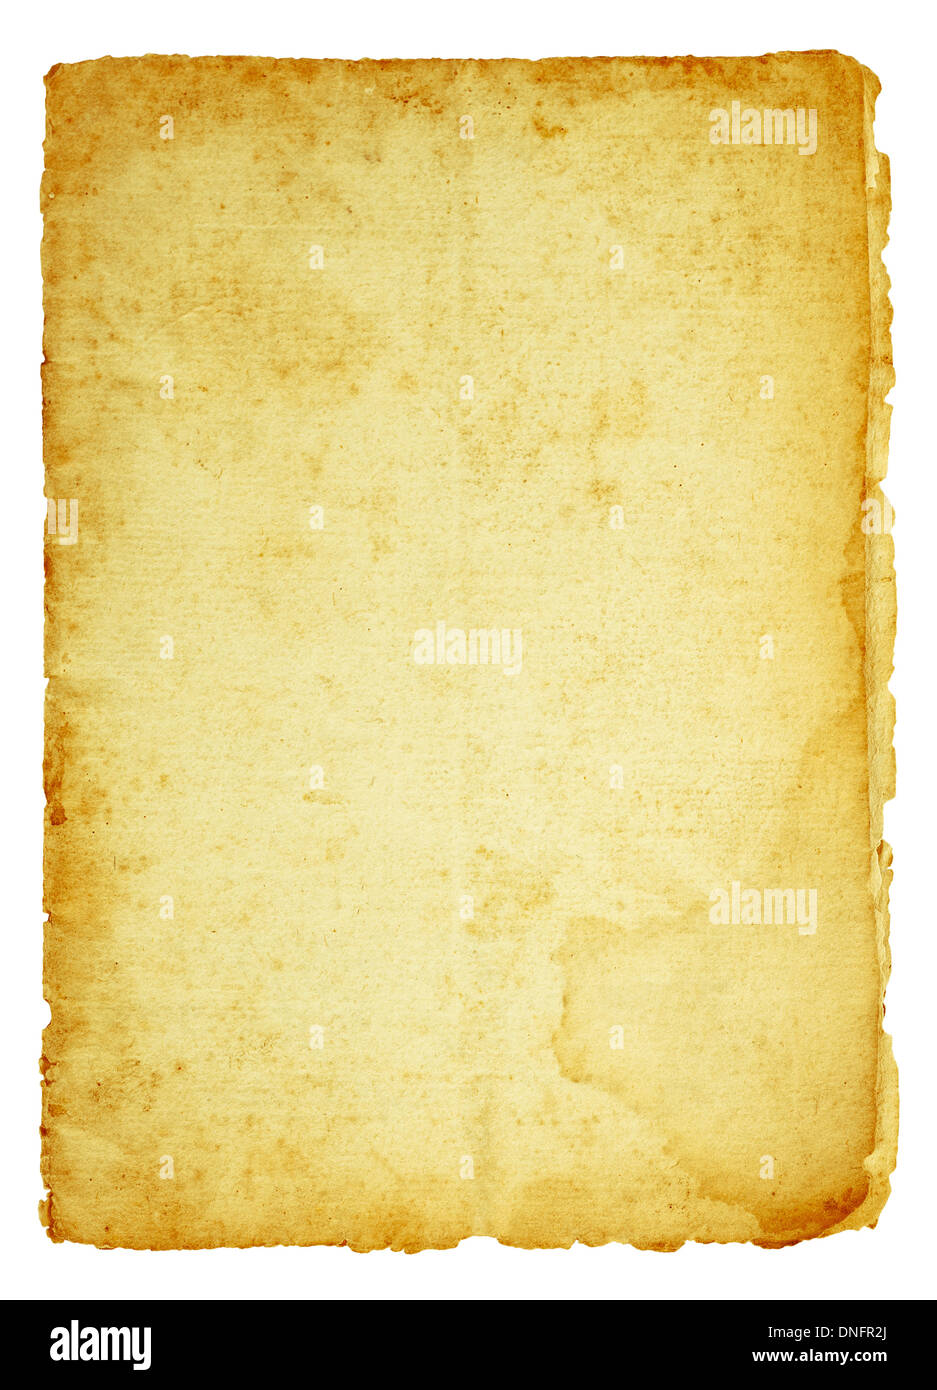 Dirty old paper isolated on white - Stock Image